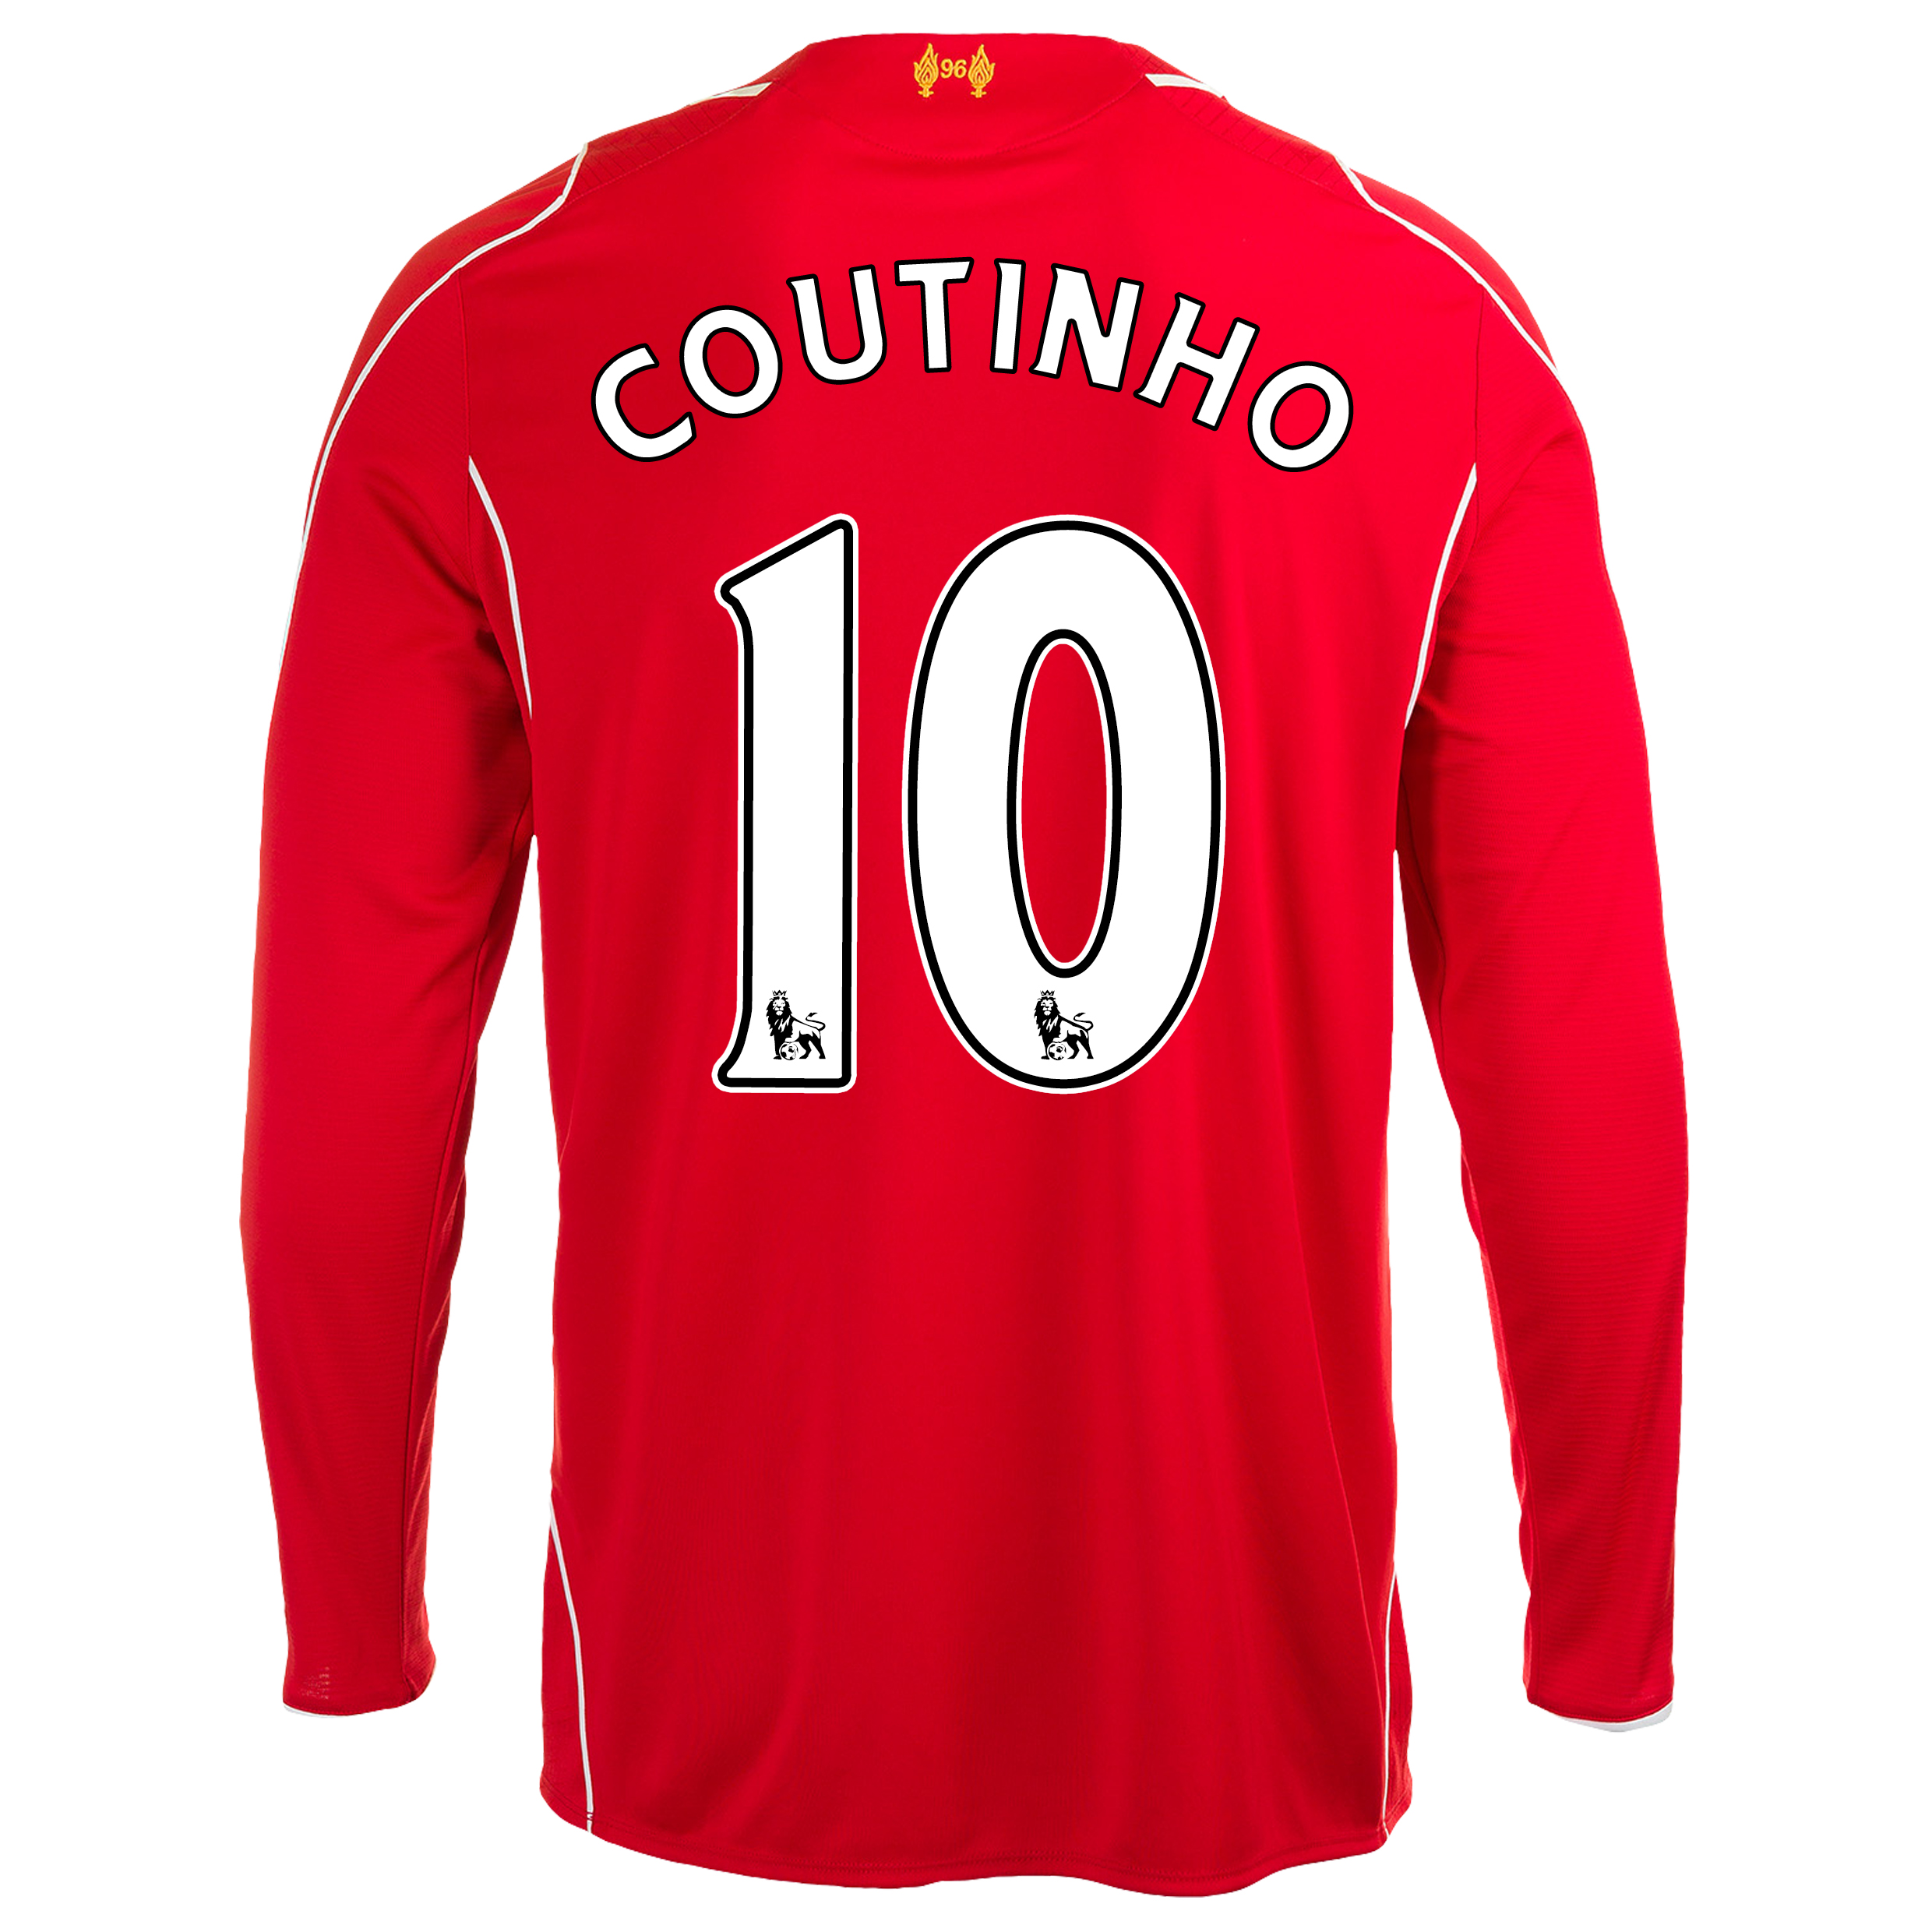 Liverpool Home Shirt 2014/15 Long Sleeve Red with Coutinho 10 printing